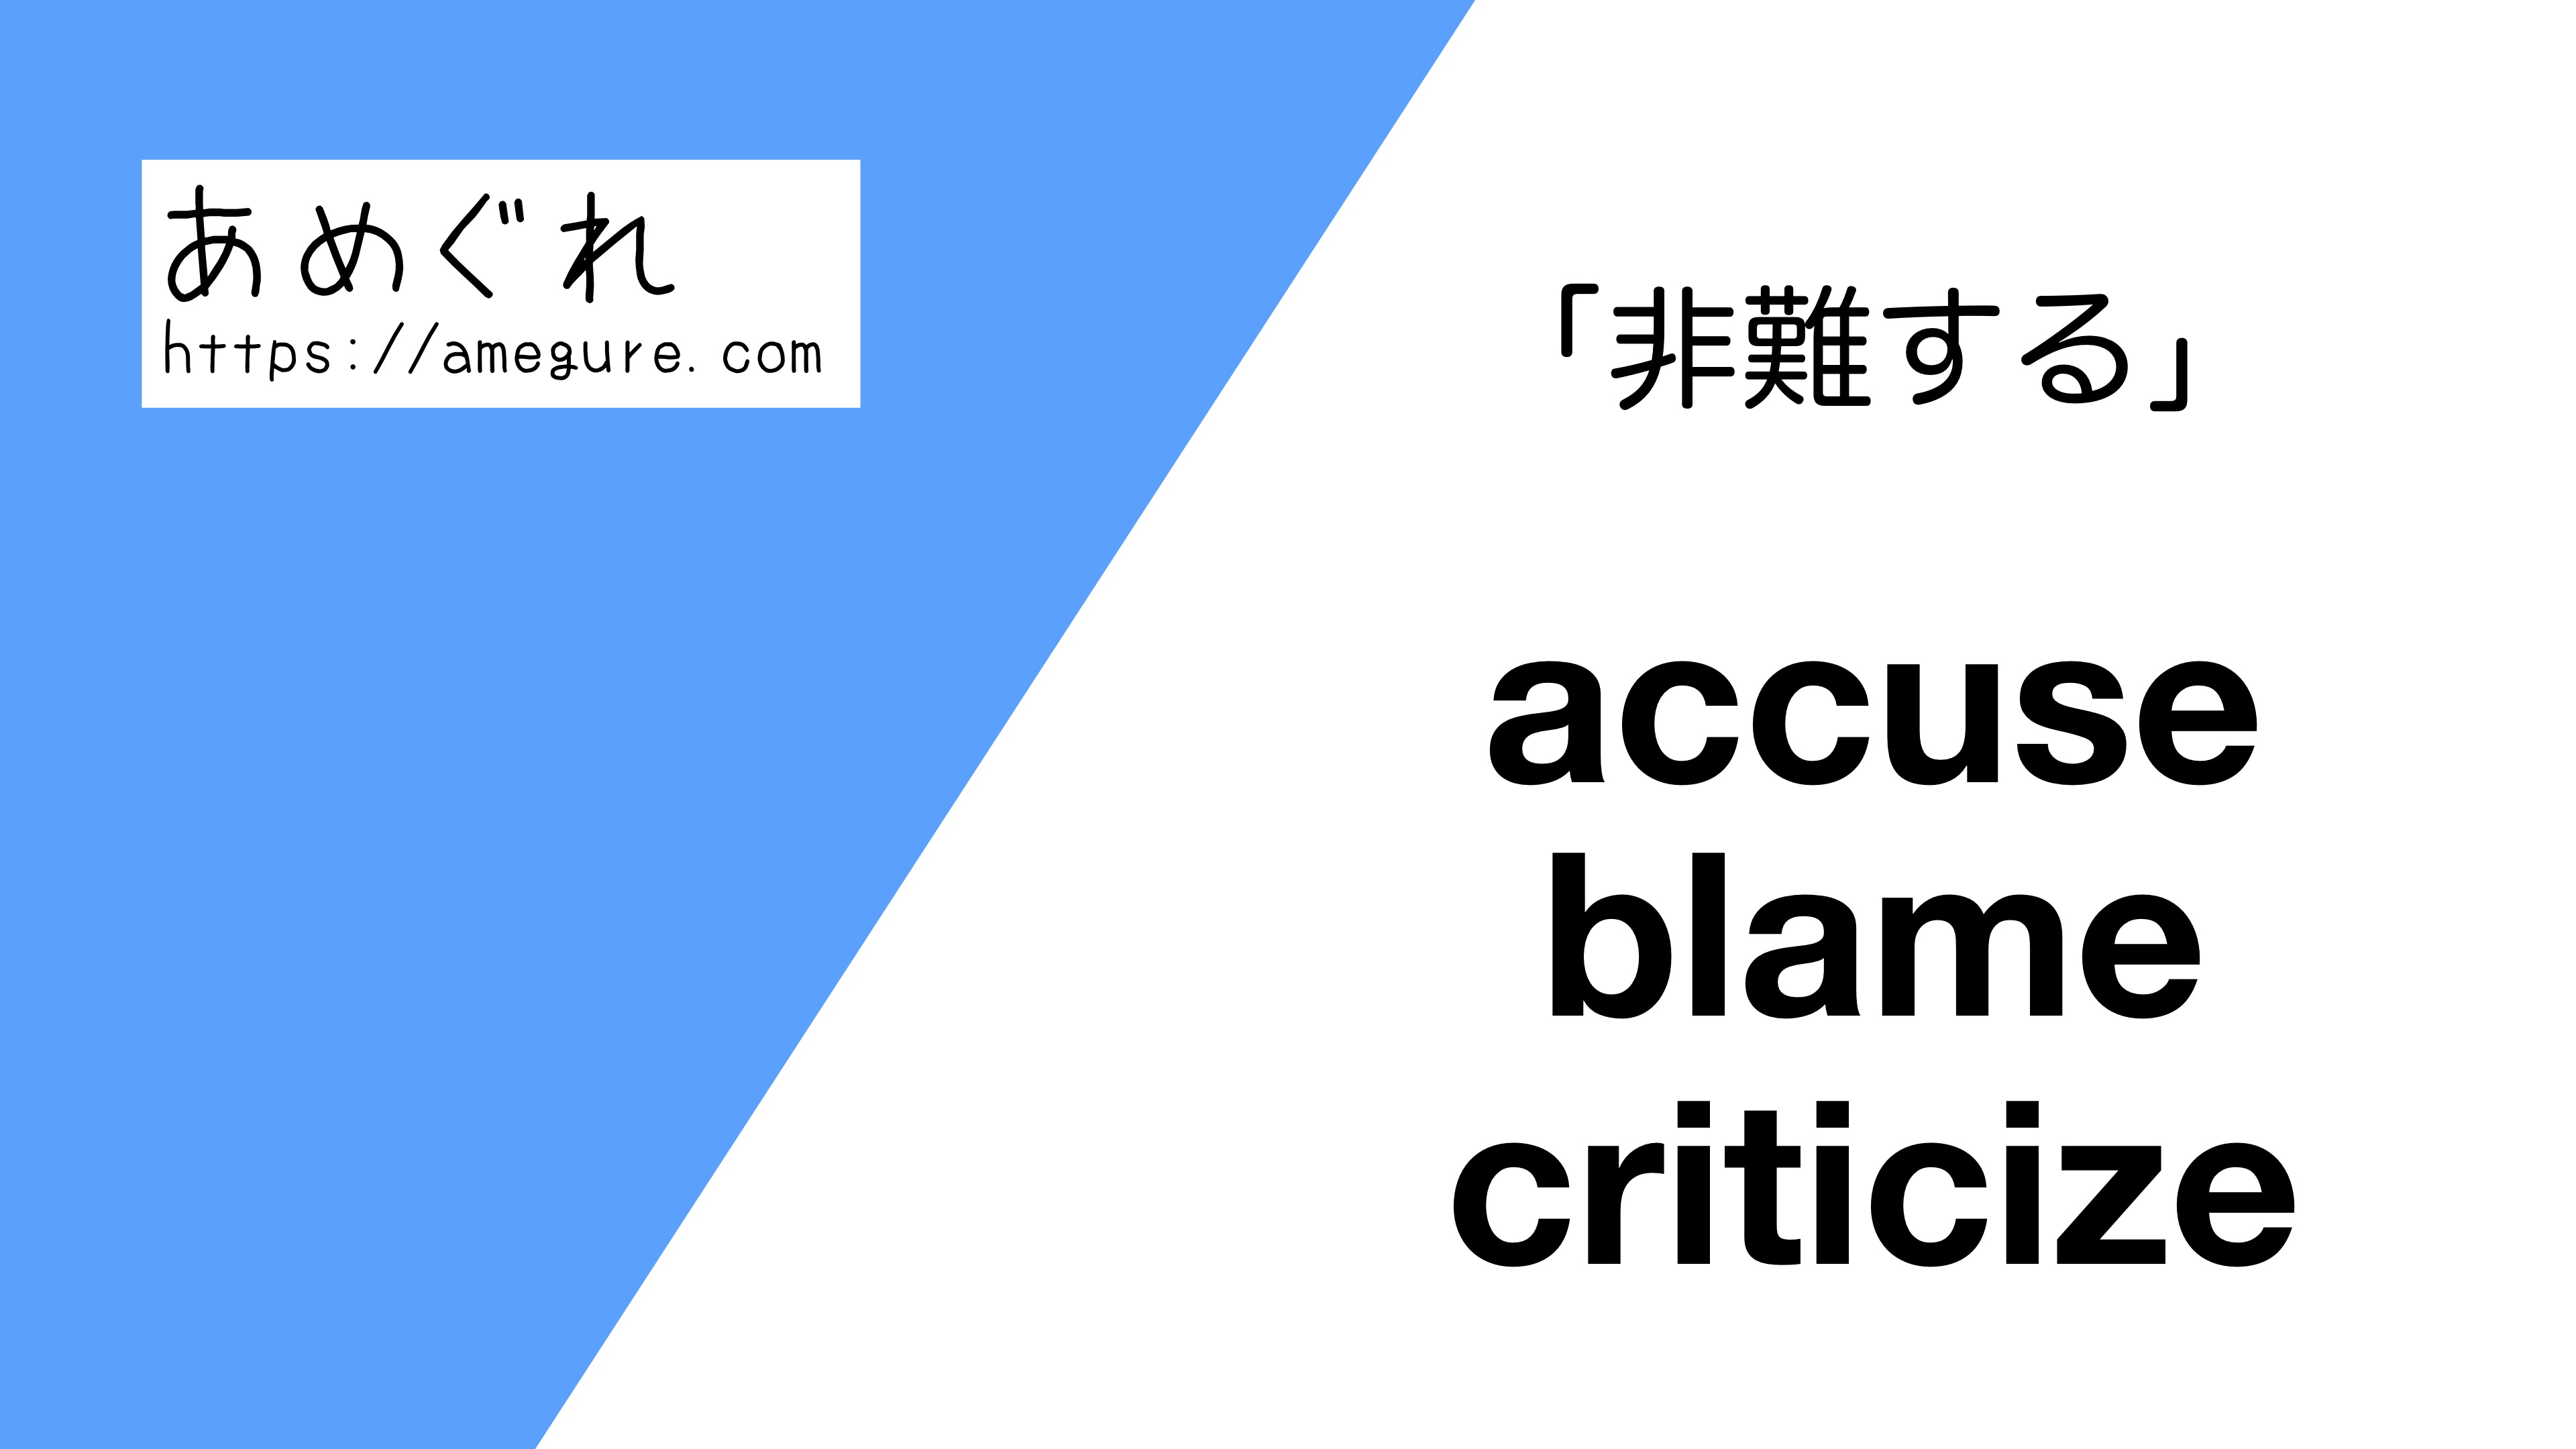 accuse-blame-criticize違い